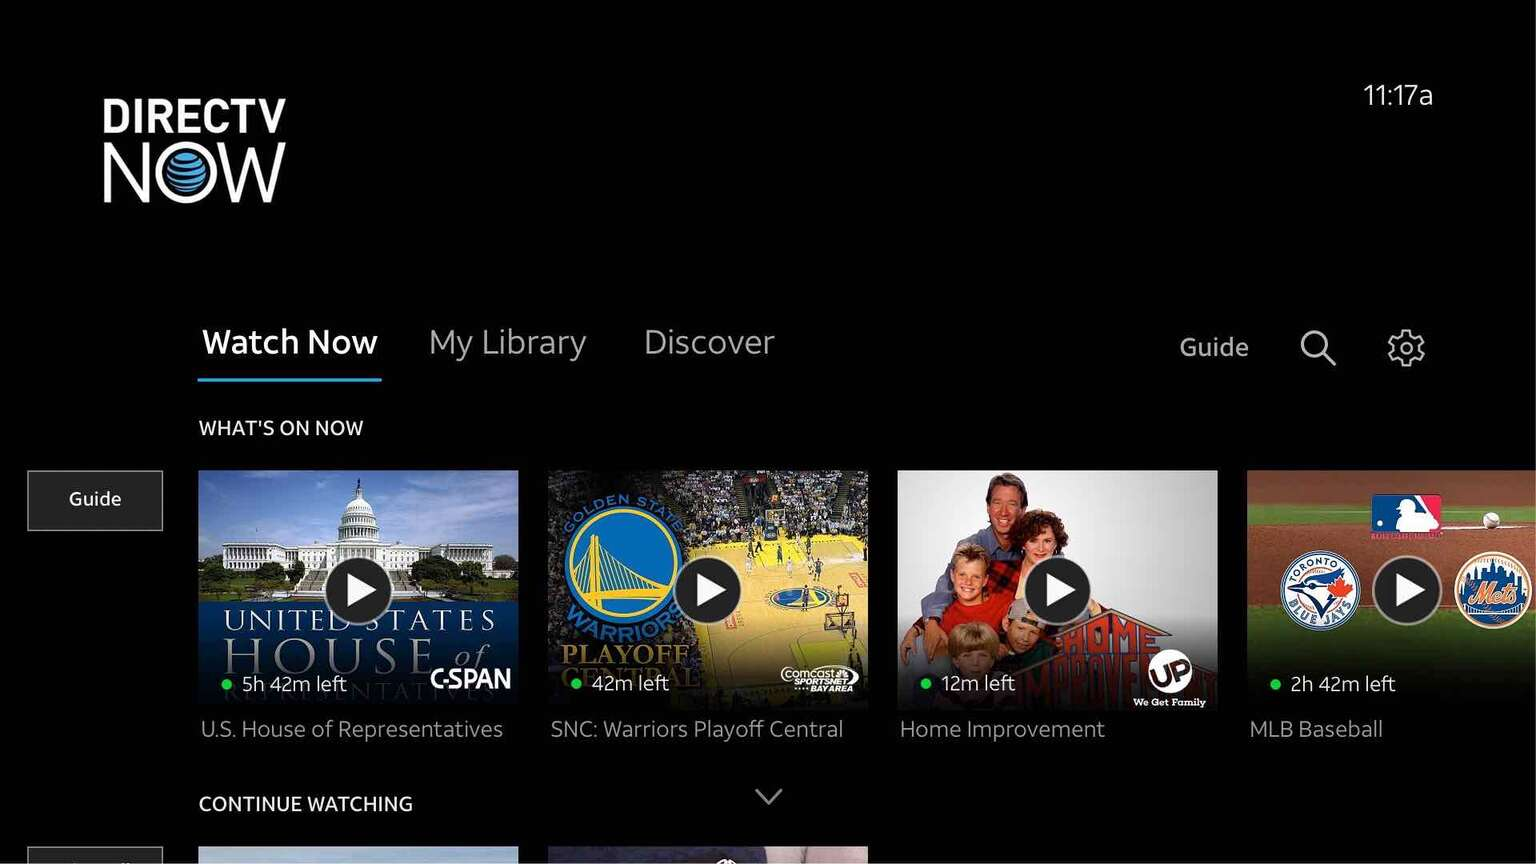 do directv now plus compare to current plans the streamable resume watching mainimage Resume Directv Resume Watching